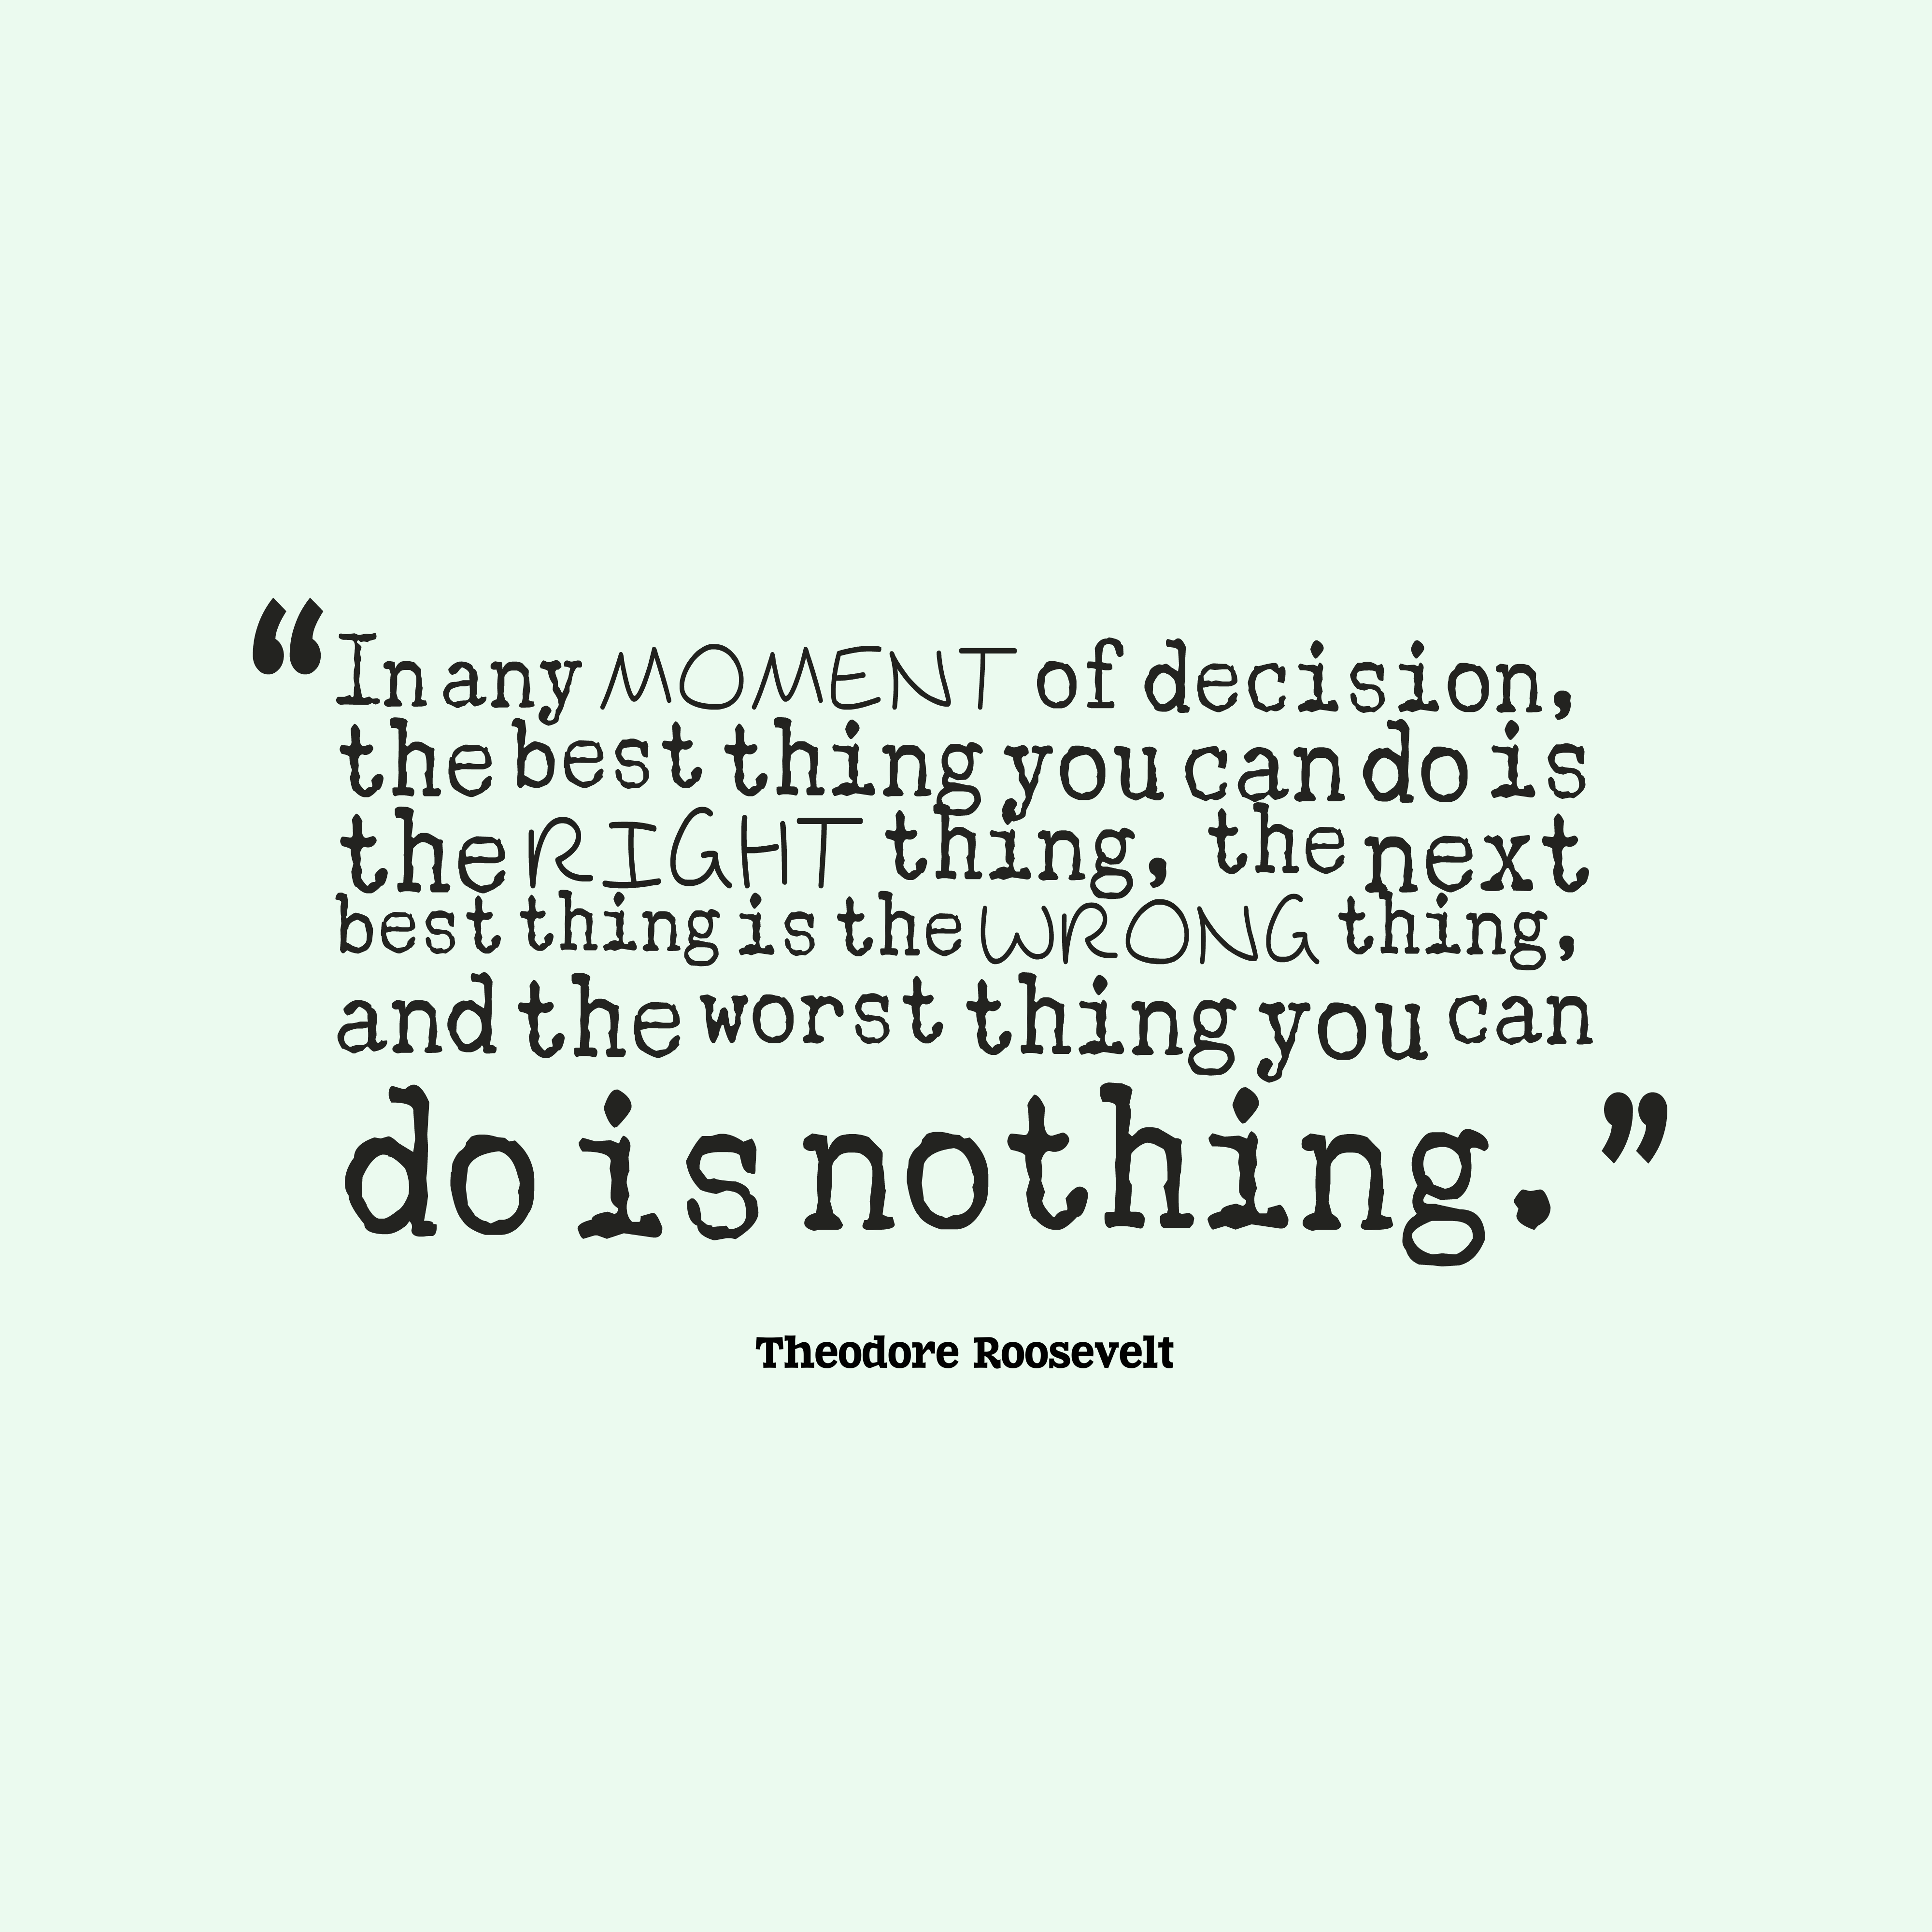 Quotes image of In any moment of decision, the best thing you can do is the right thing, the next best thing is the wrong thing, and the worst thing you can do is nothing.